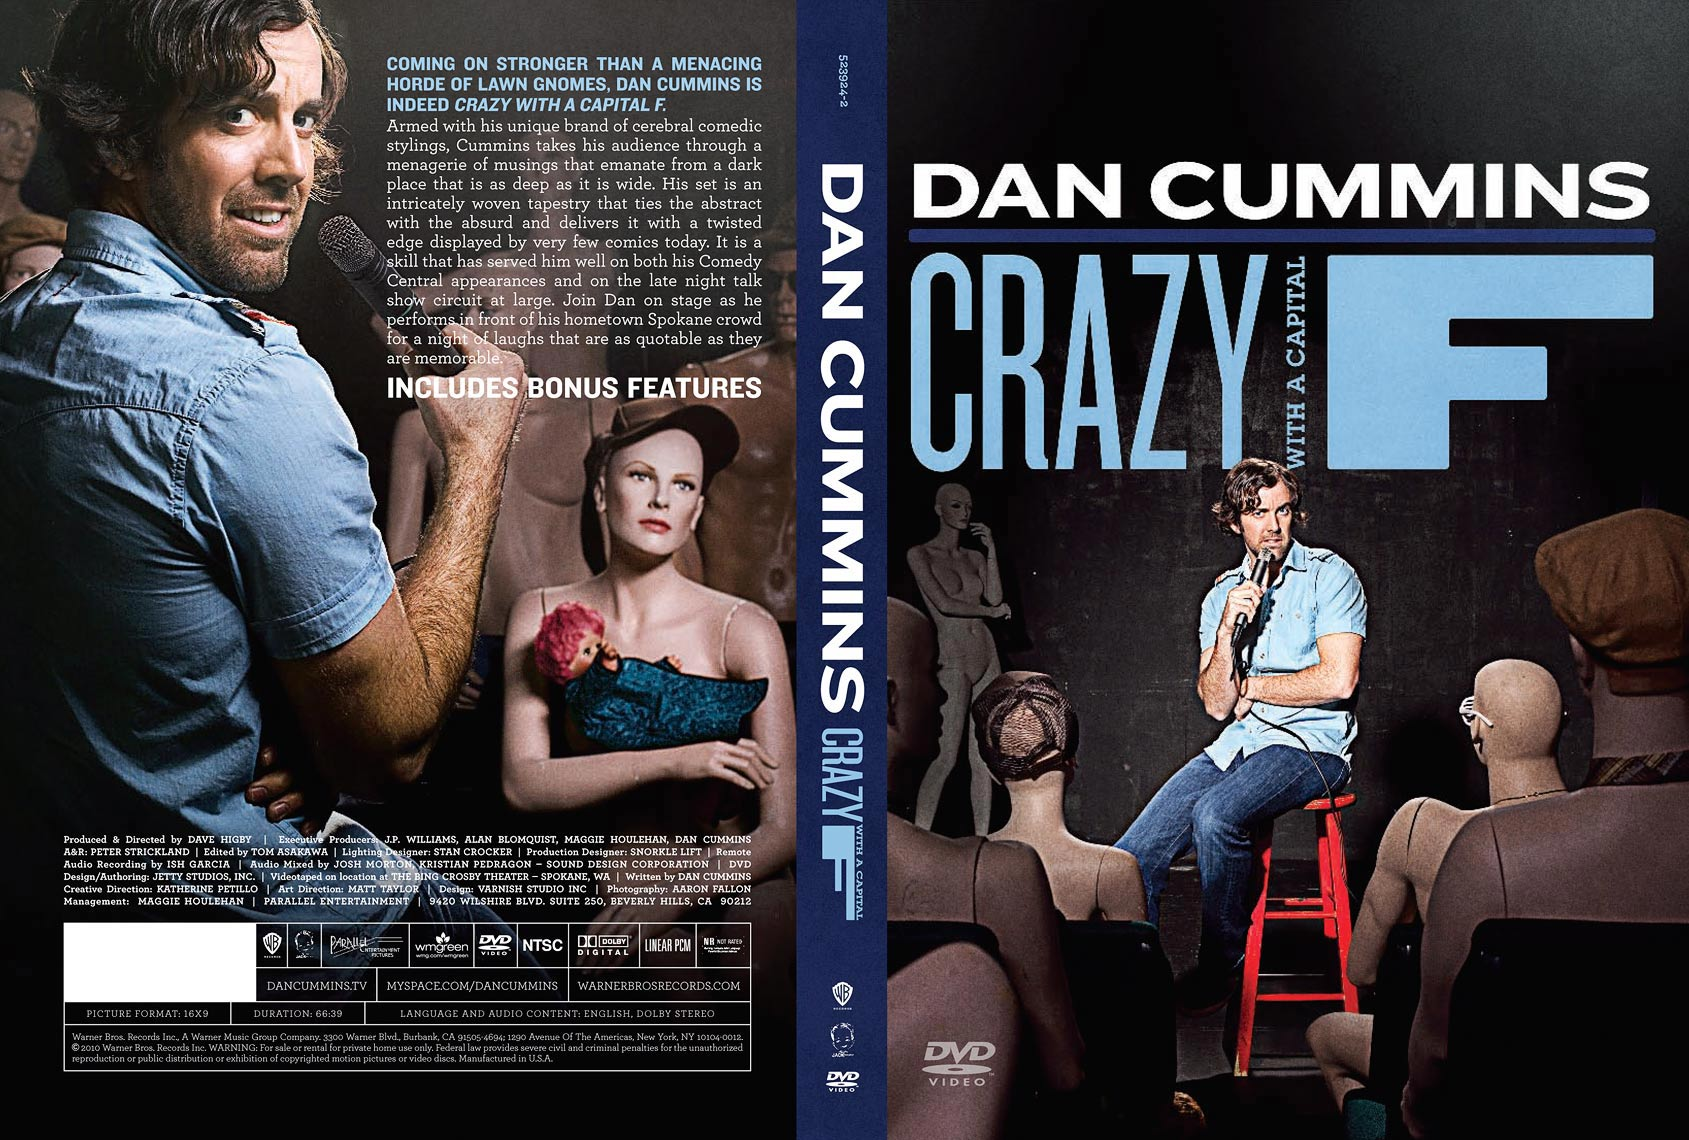 DAN_CUMMINS_CRAZY_DVD_OUTERWRAPr3.jpg